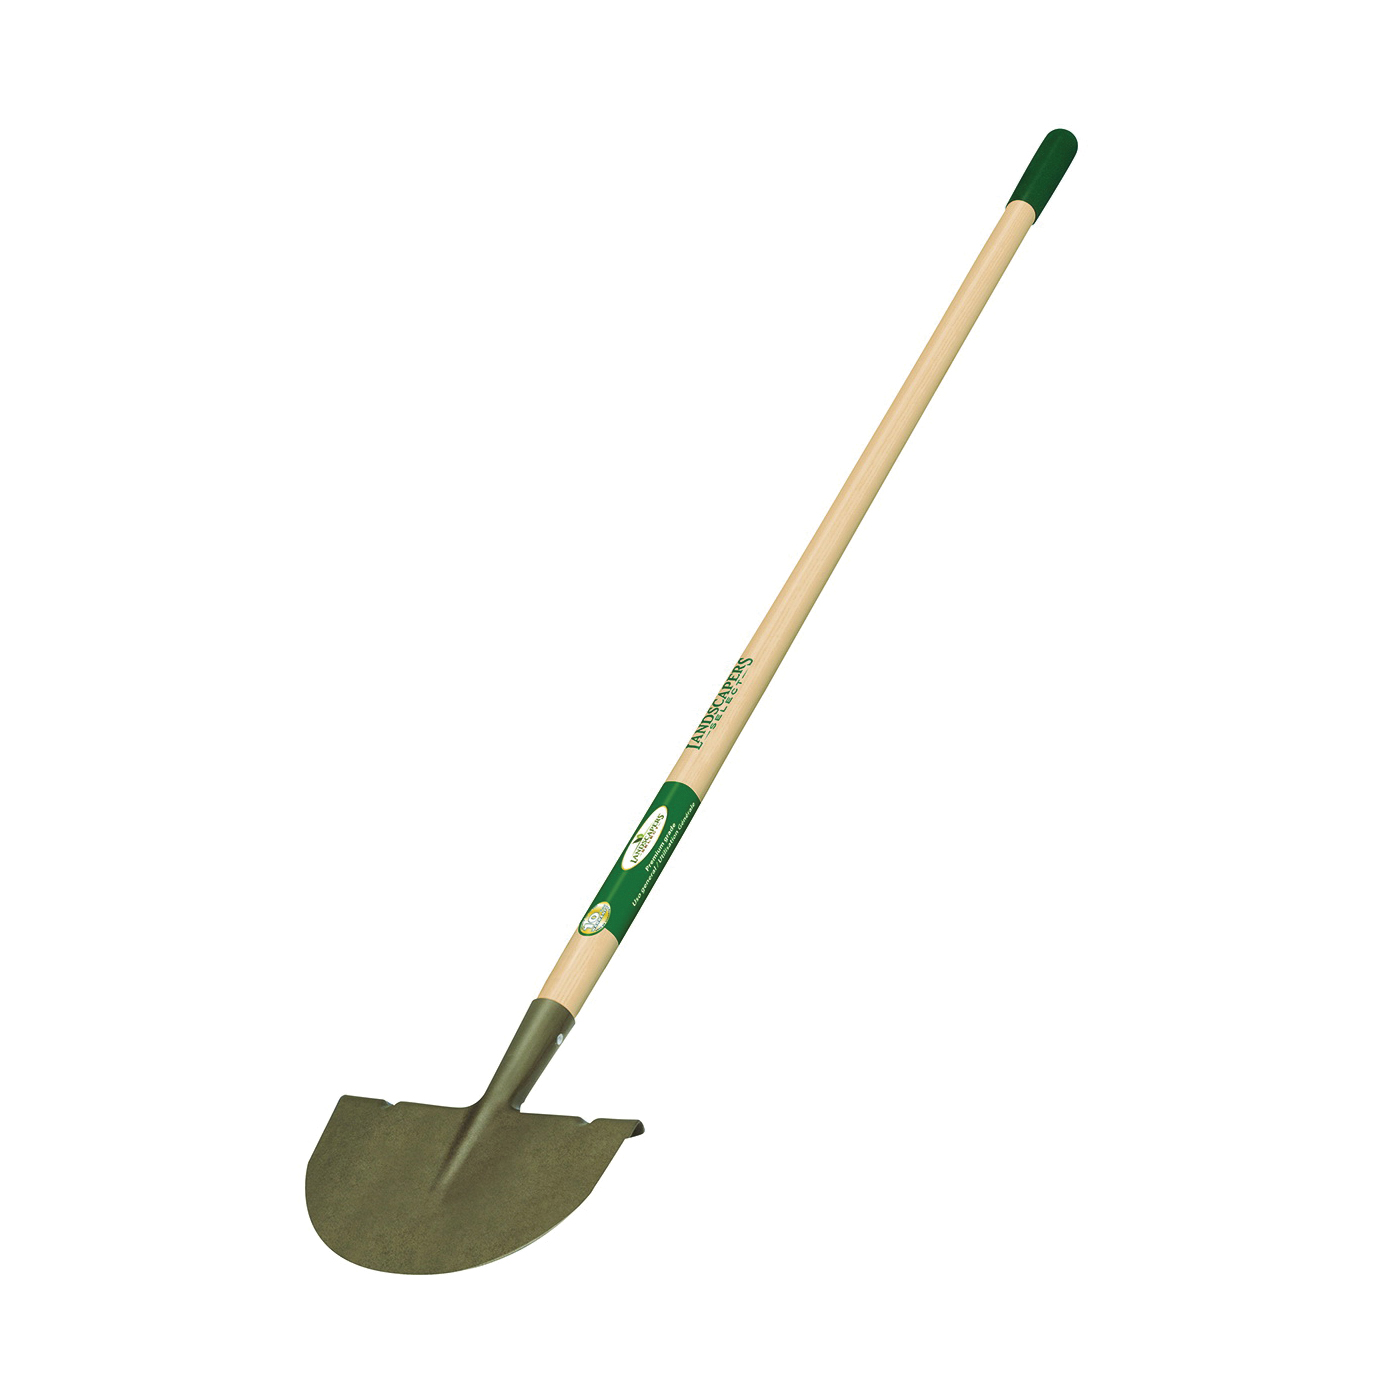 Picture of Landscapers Select 34623 Sidewalk/Garden Edger, Wood Handle, Premium Ash Handle